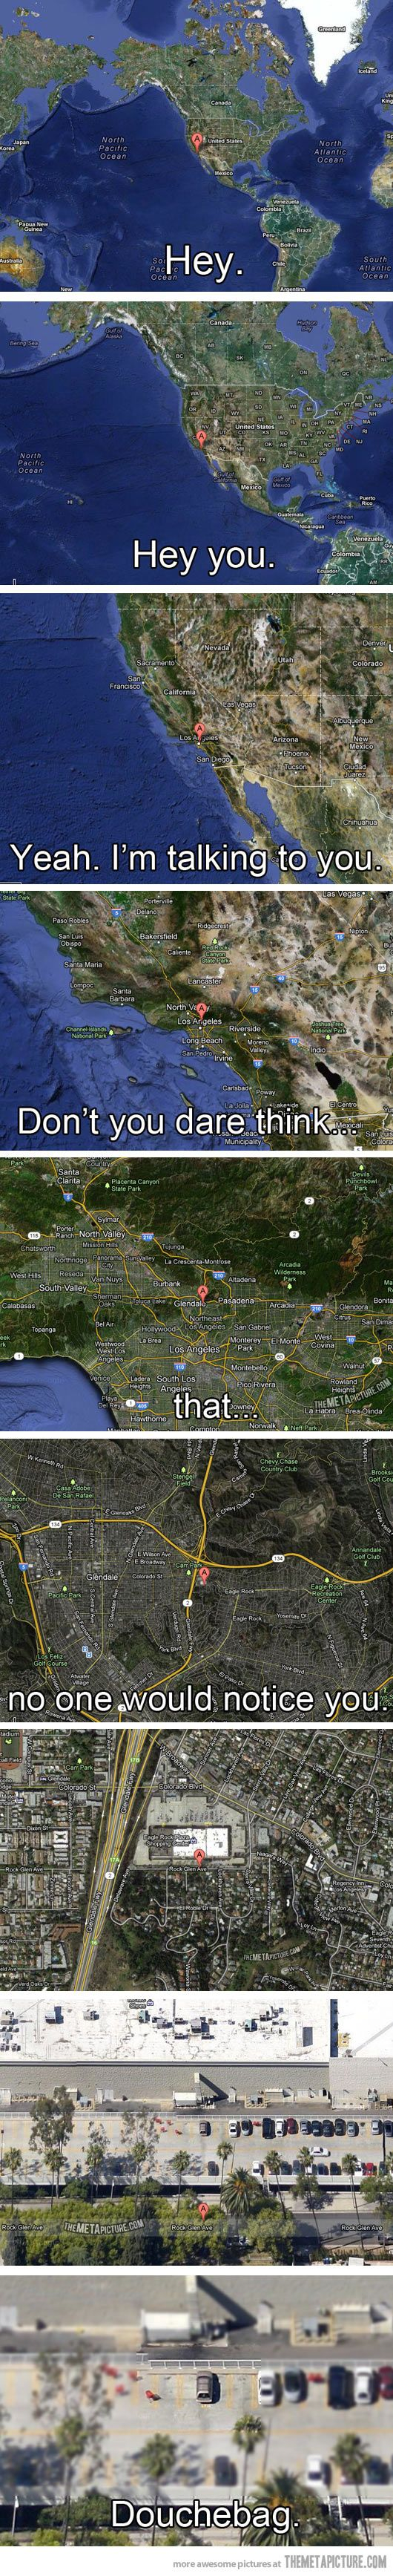 Lololol: Giggle, Google Earth, Goggle Maps, Cant Stop Laughing, People S Children, Funny Stuff, Hate People, Can'T Stop Laughing